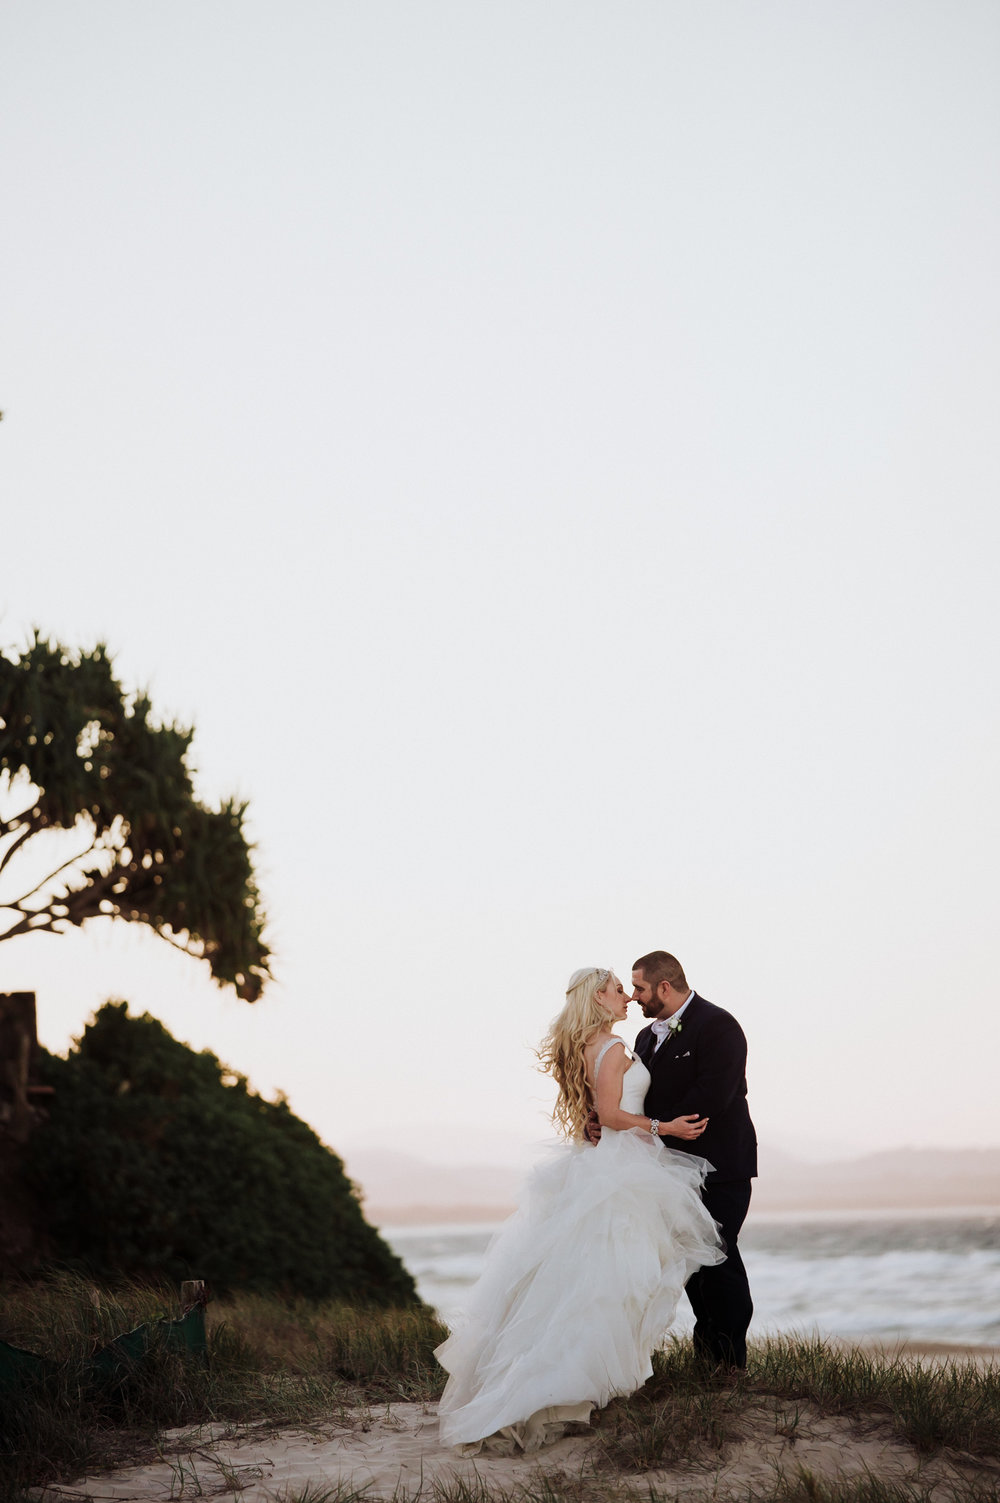 The_Belongil_Byron_Bay_Weddings_New_Black_Studios-174.jpg